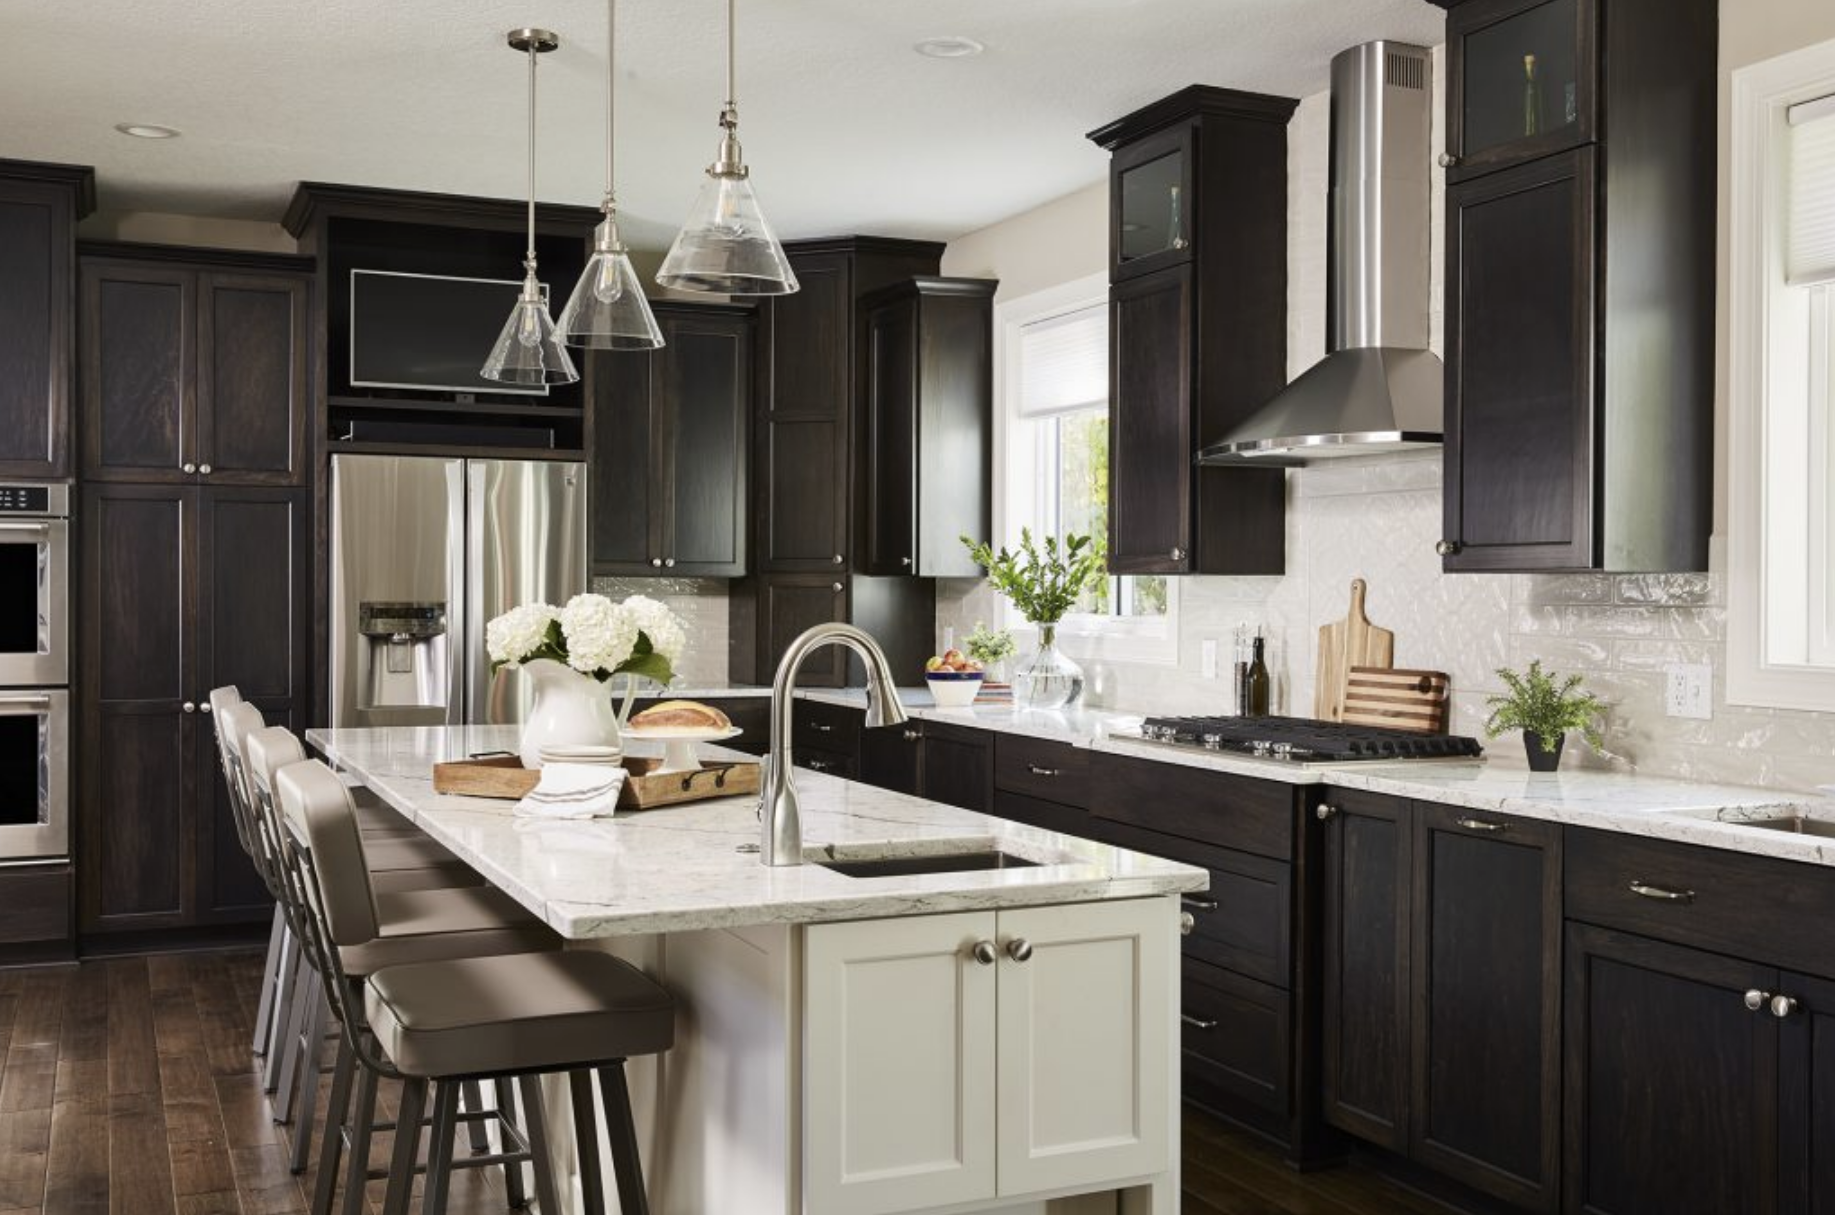 Rich, dark kitchen cabinets against a light backsplash and walls made for a sophisticated kitchen style in this home.